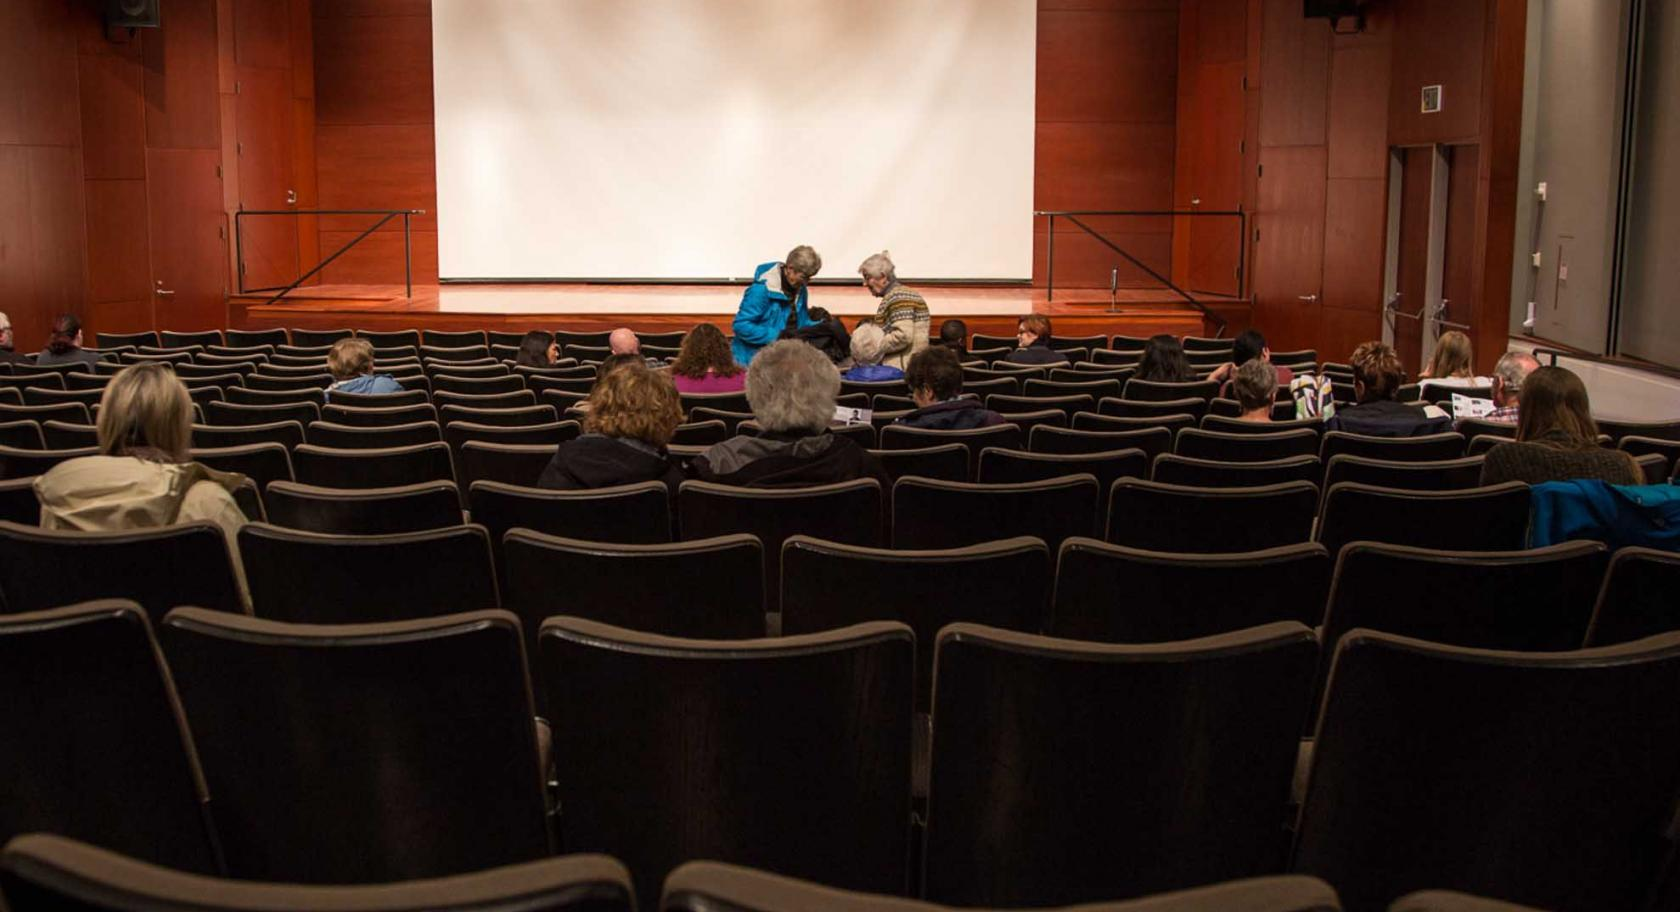 Visitors gathering in auditorium for film screening.